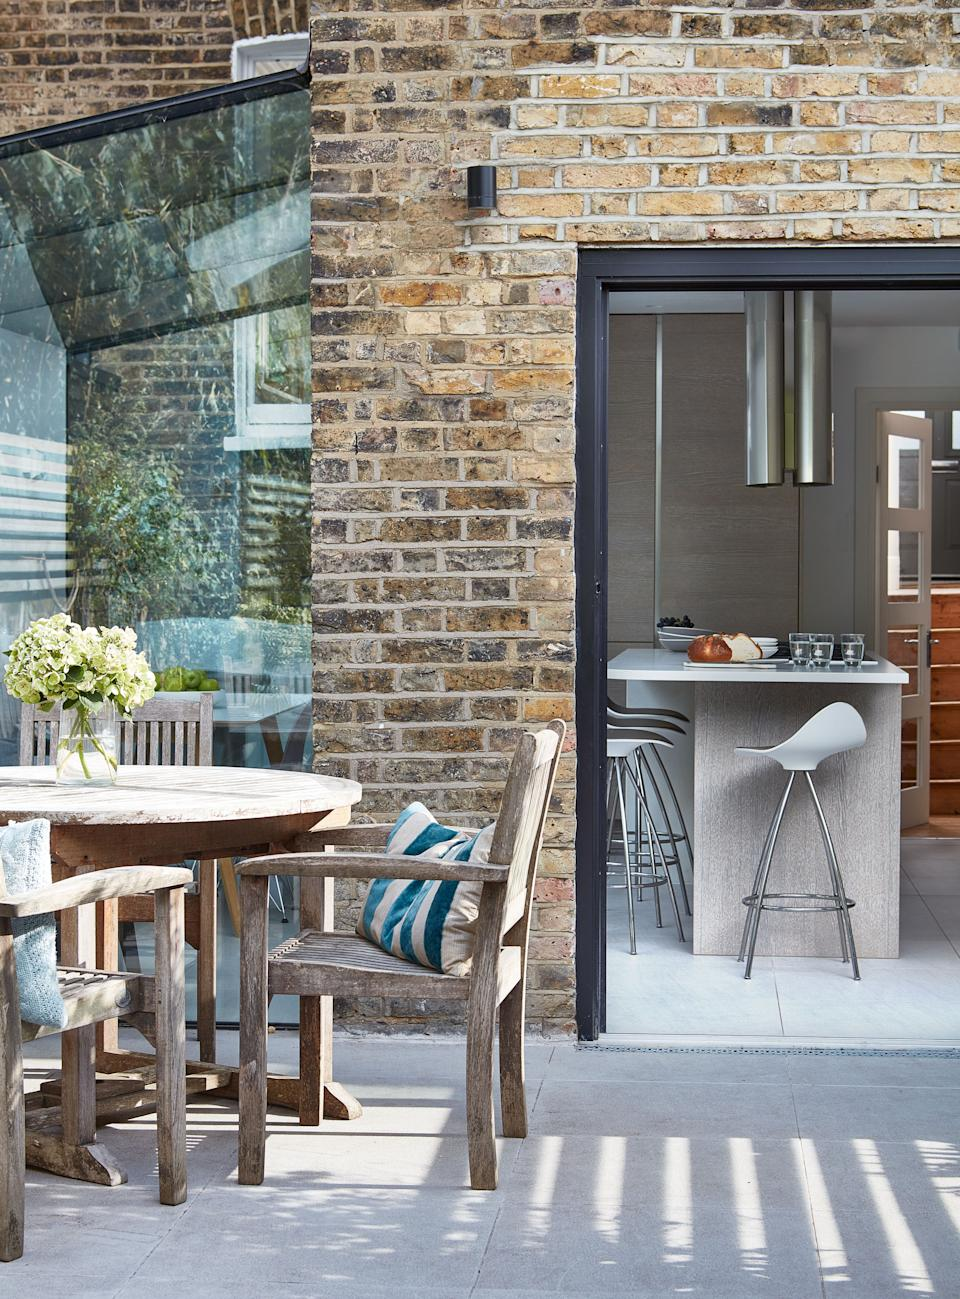 Sarah Brooks' kitchen has been improved by adding a glass box style extension to the side of her London home